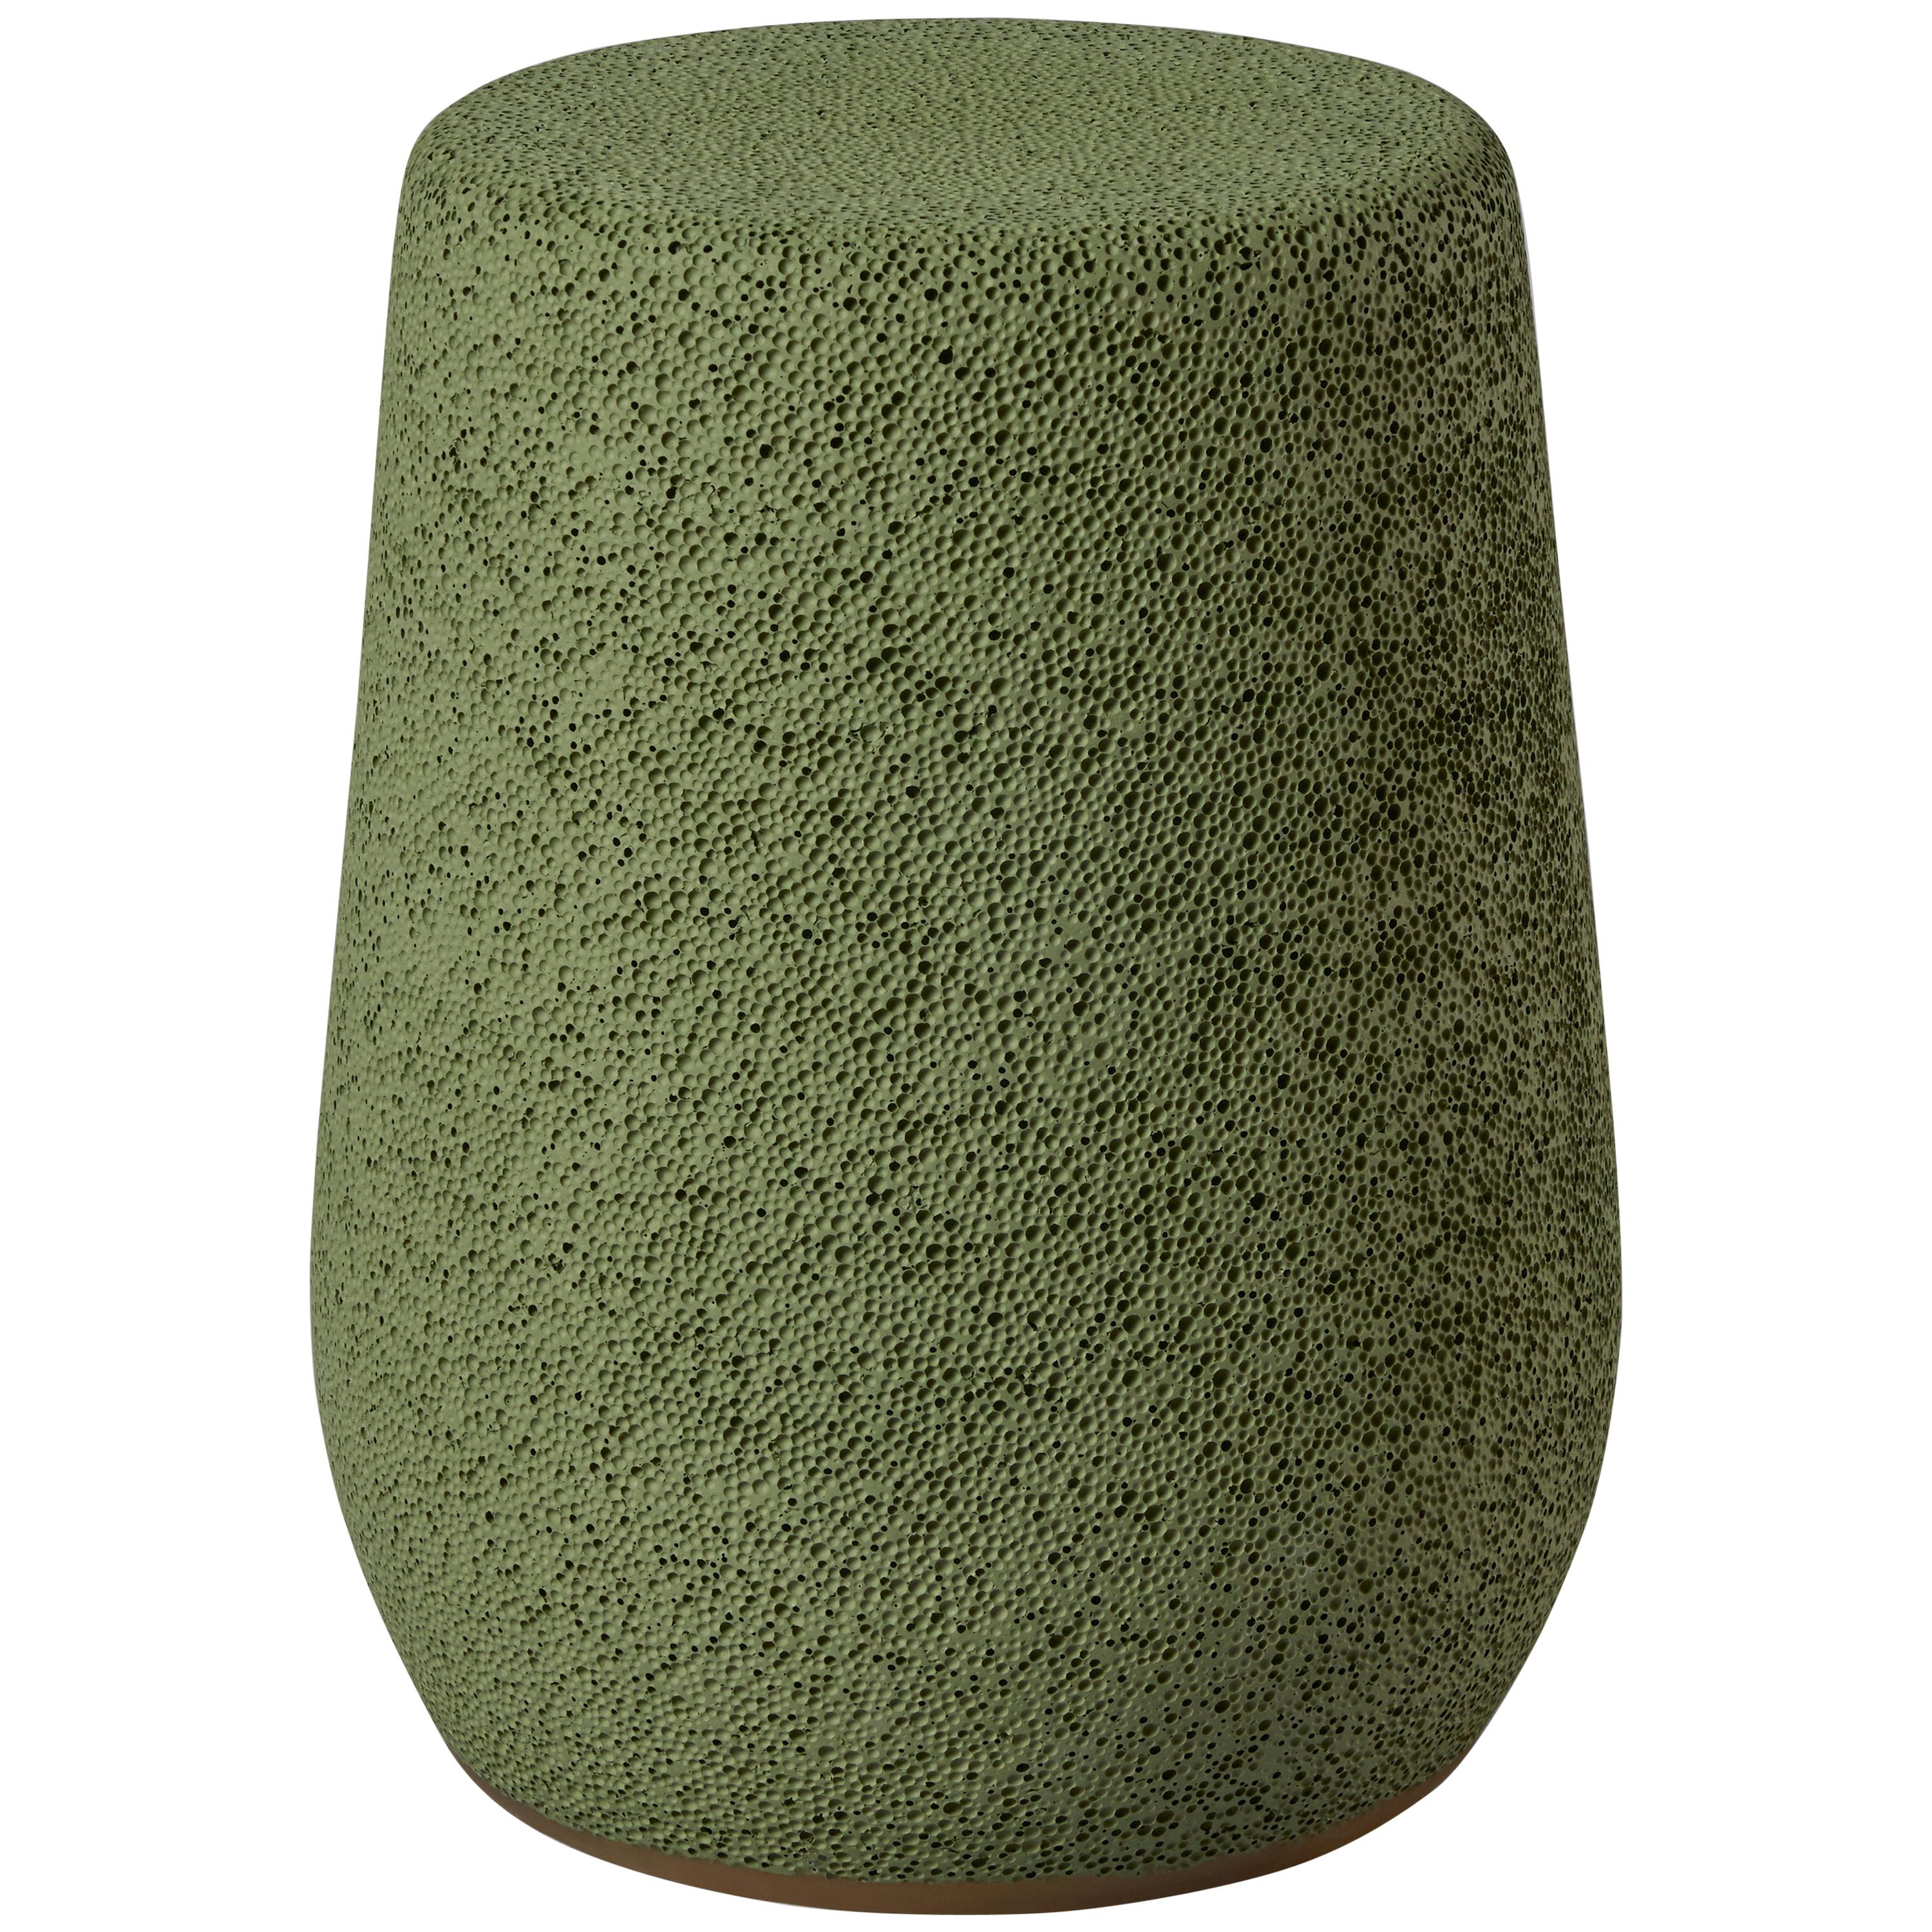 'Lightweight Porcelain' Stool and Side Table by Djim Berger - Color:Golden Green